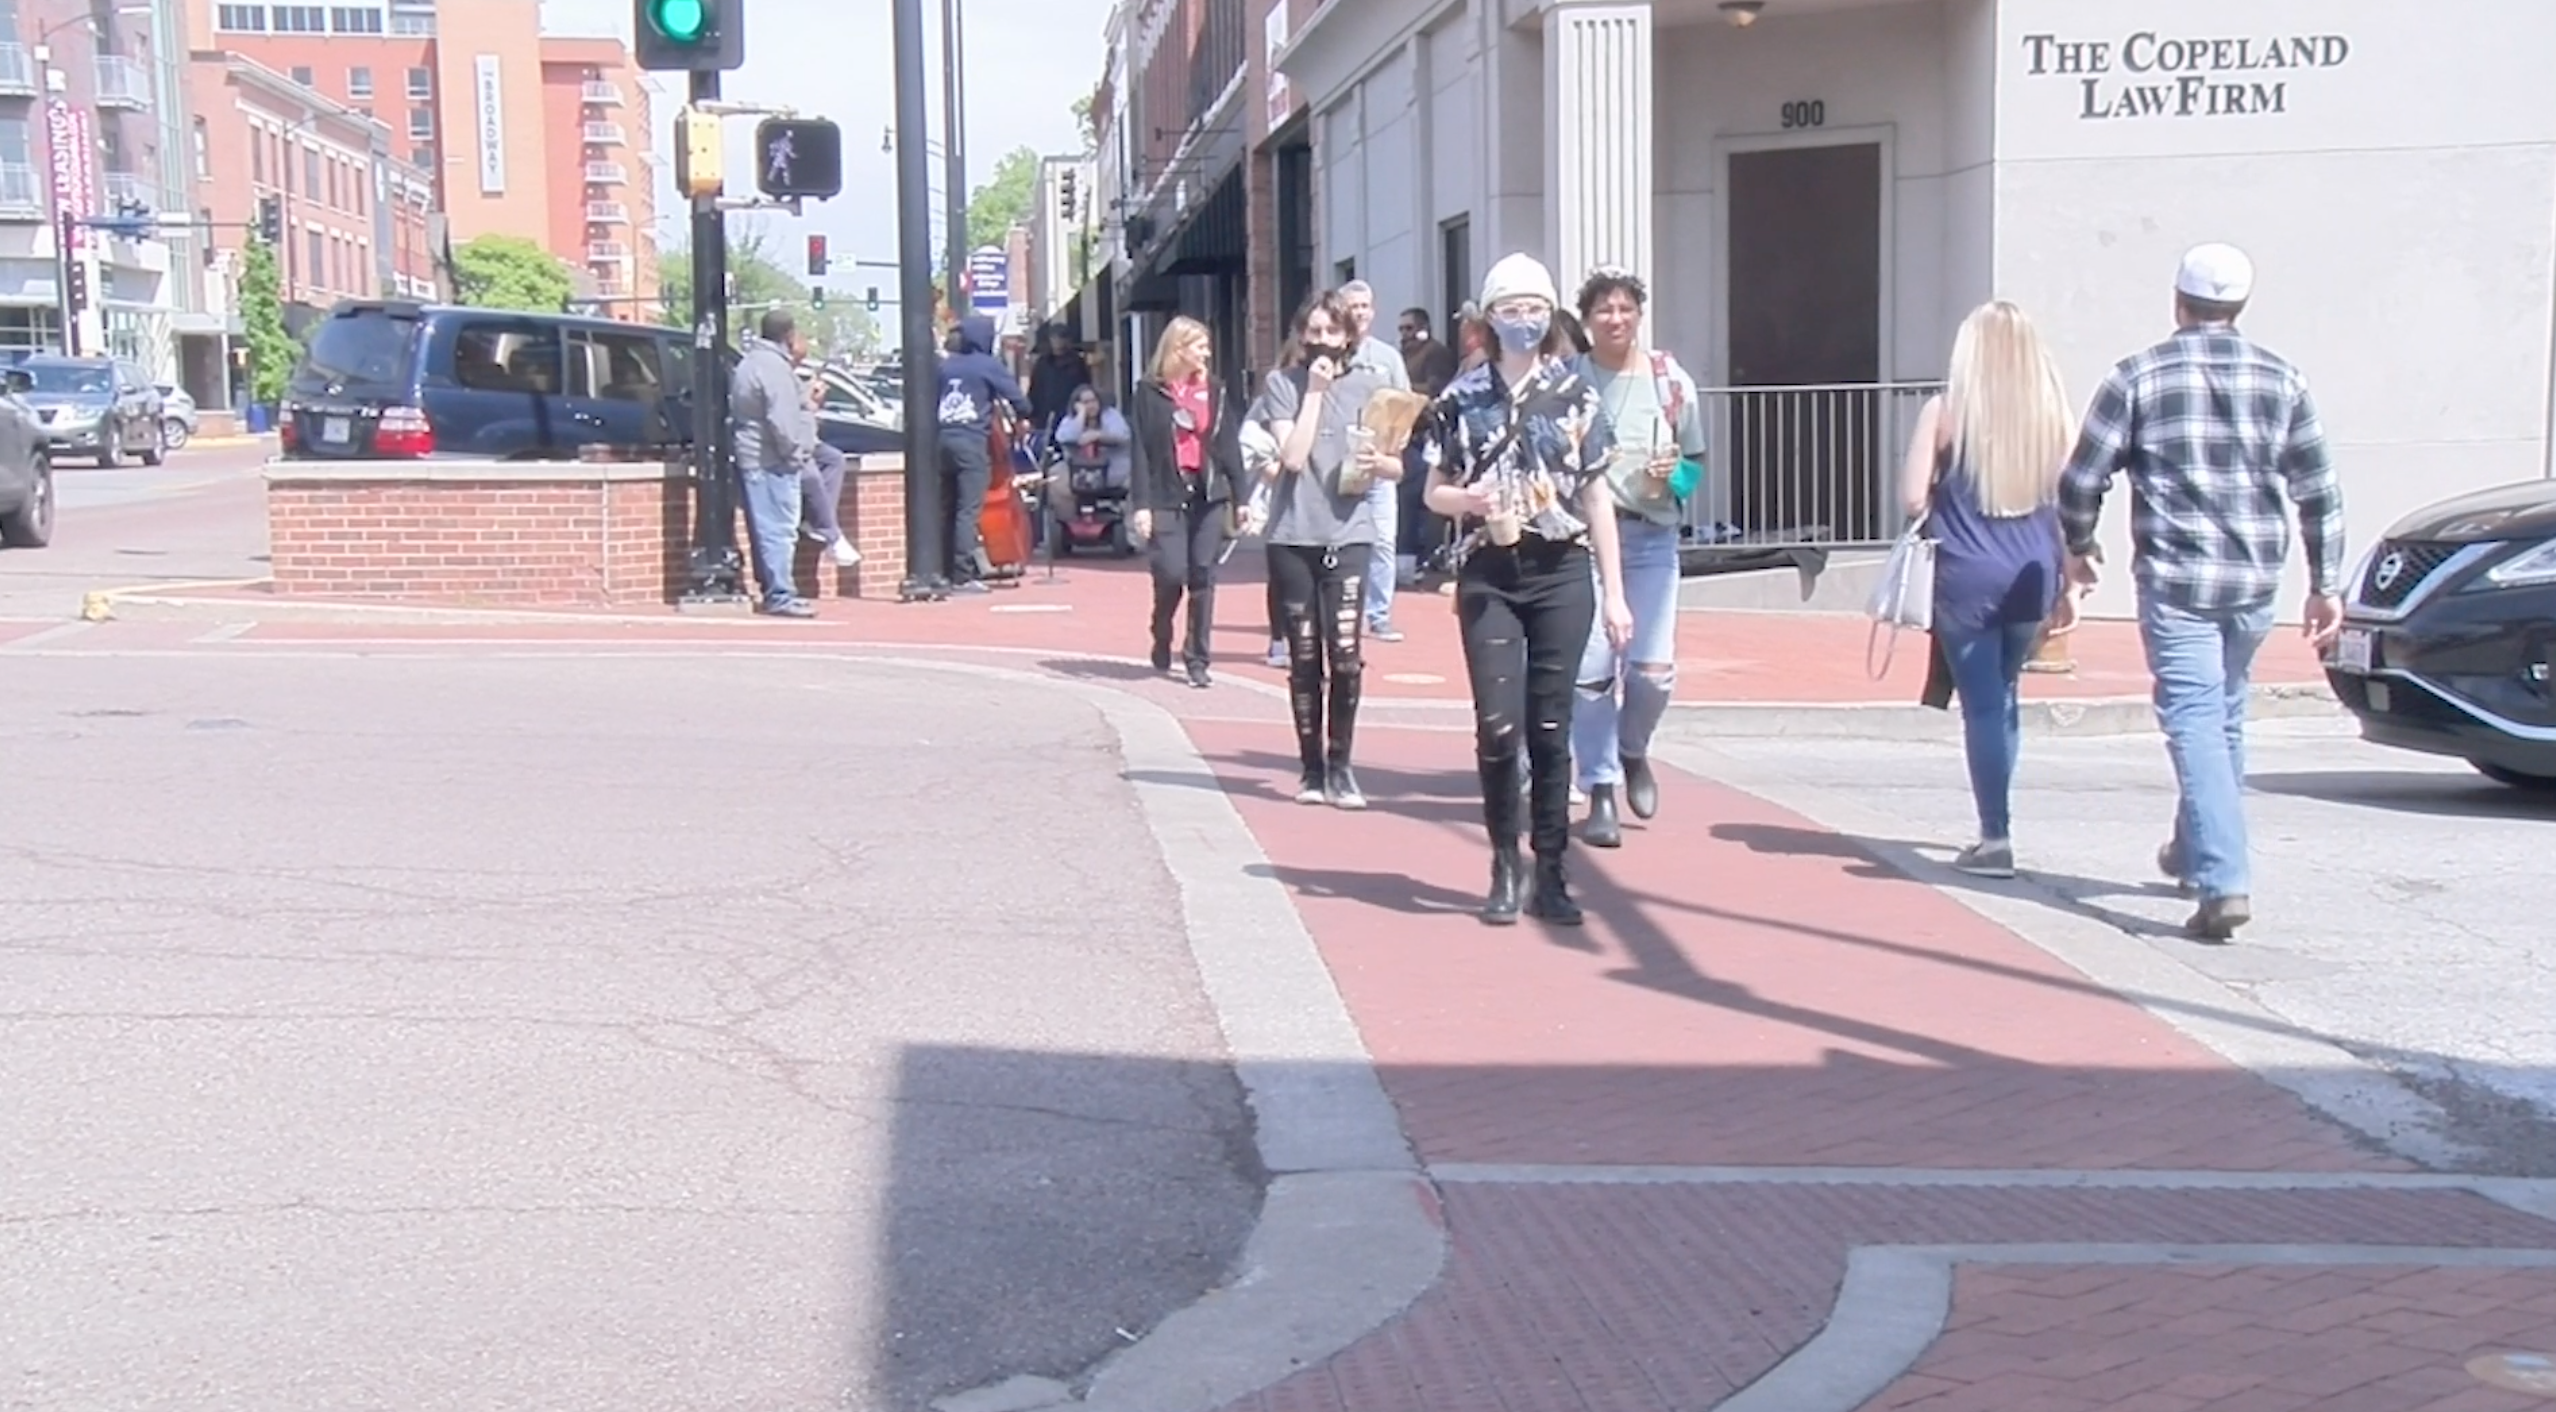 Weekend events bring more people into Columbia resulting in more traffic for businesses